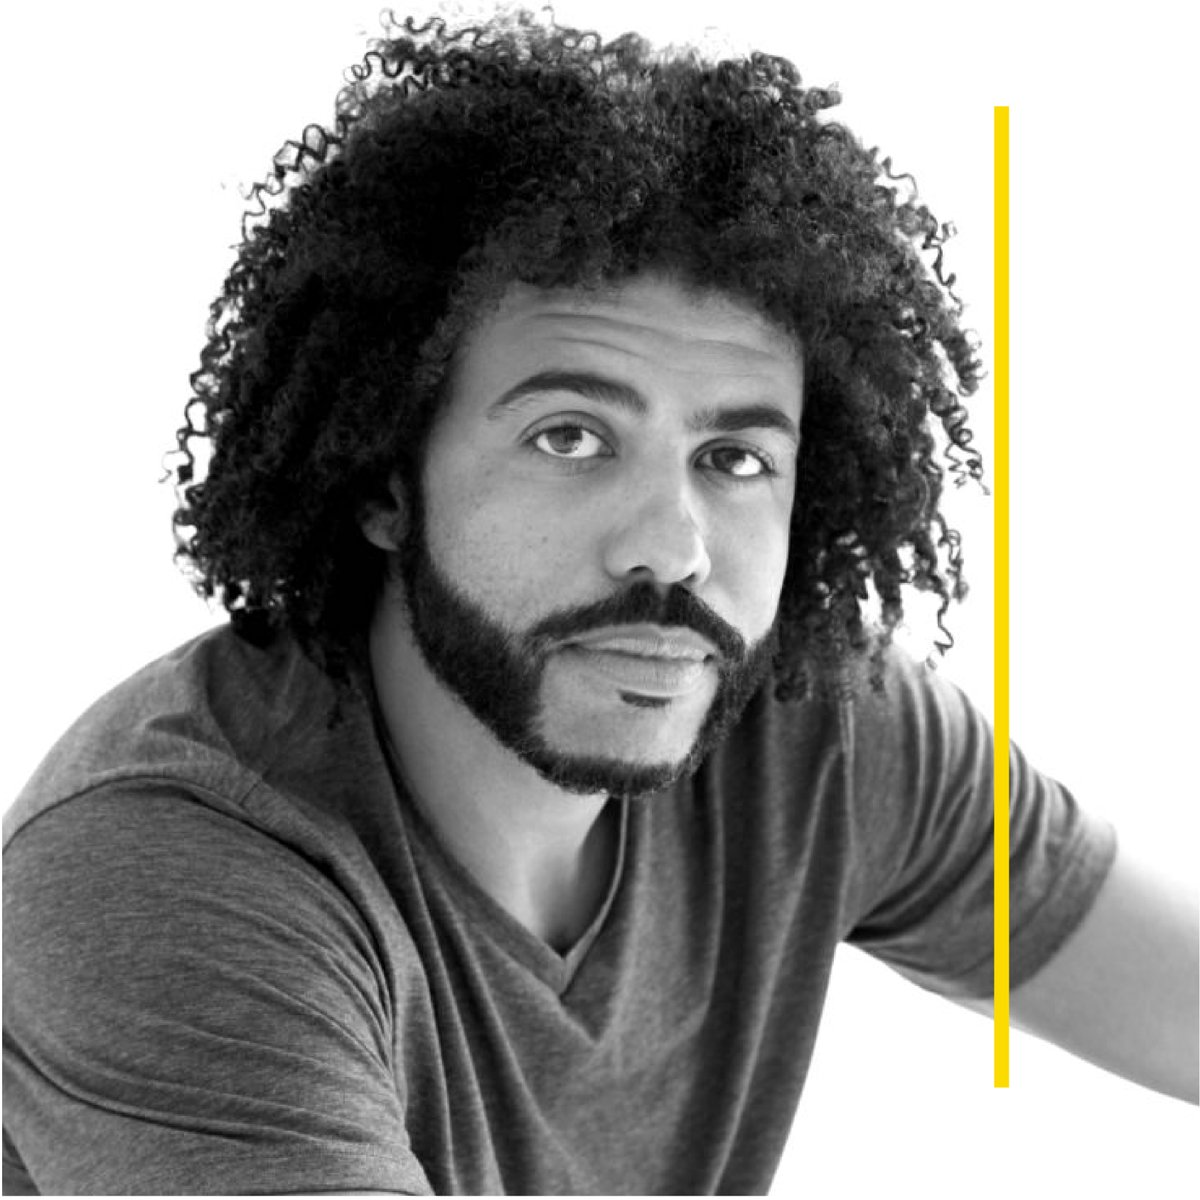 Don't miss @daveeddiggs performing original work by @cajohnso90 in the #TheHomeboundProject's third edition! Each ticket sold directly goes to helping hungry kids. Get your ticket and stream these new plays June 24 through June 28. 🎭 https://t.co/opx13AUHdF https://t.co/8O3Tk4yLEg